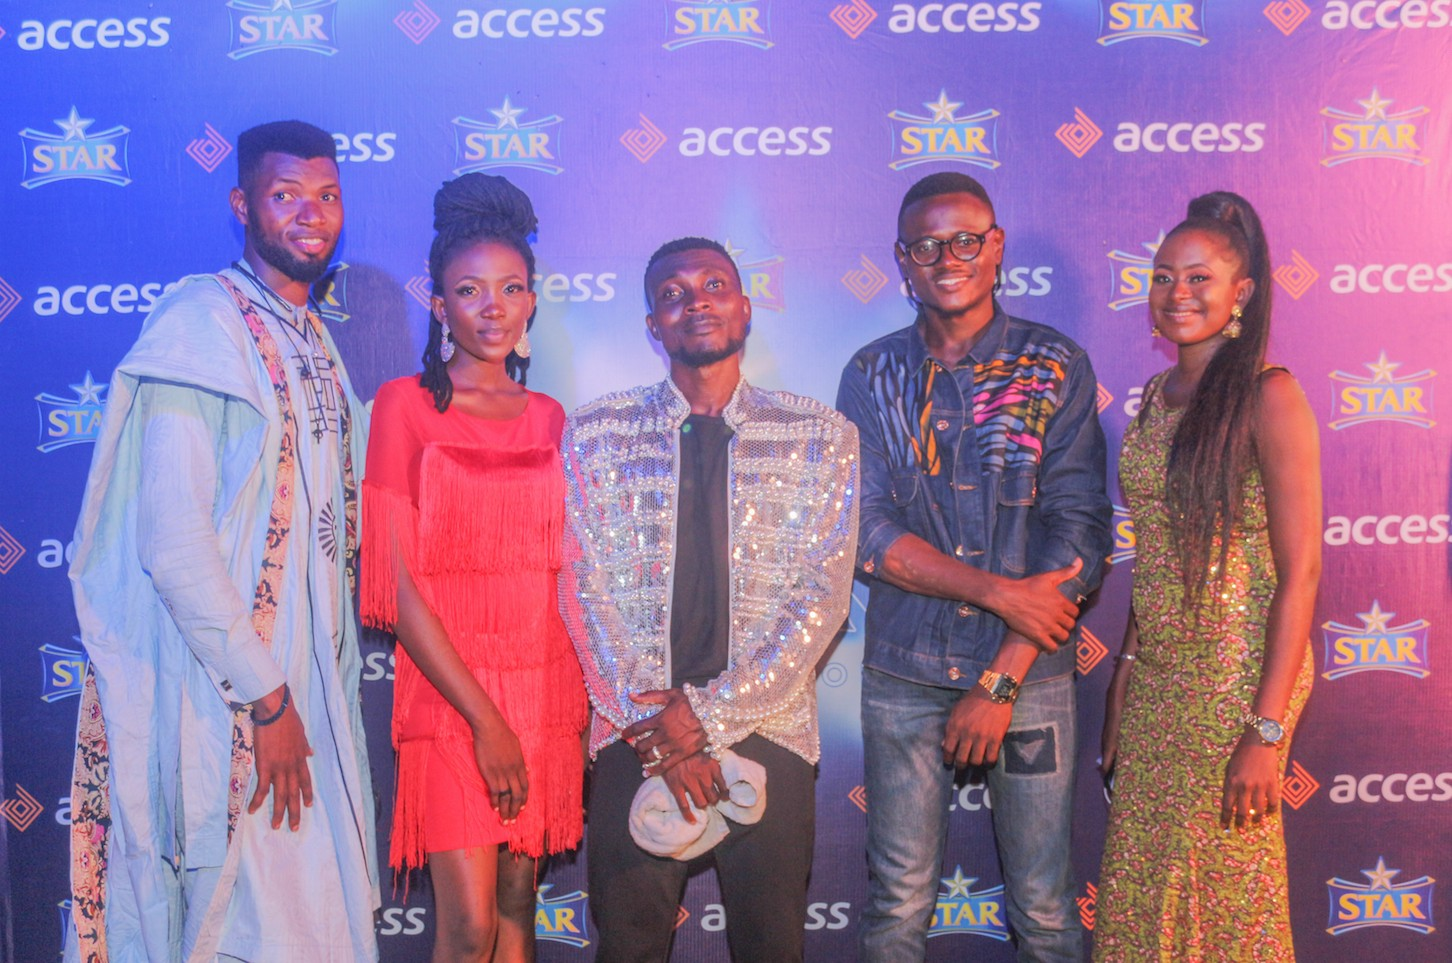 Access The Stars — Here's Our First Impression Of The Contestants And Judges (Photos) - Brand Spur